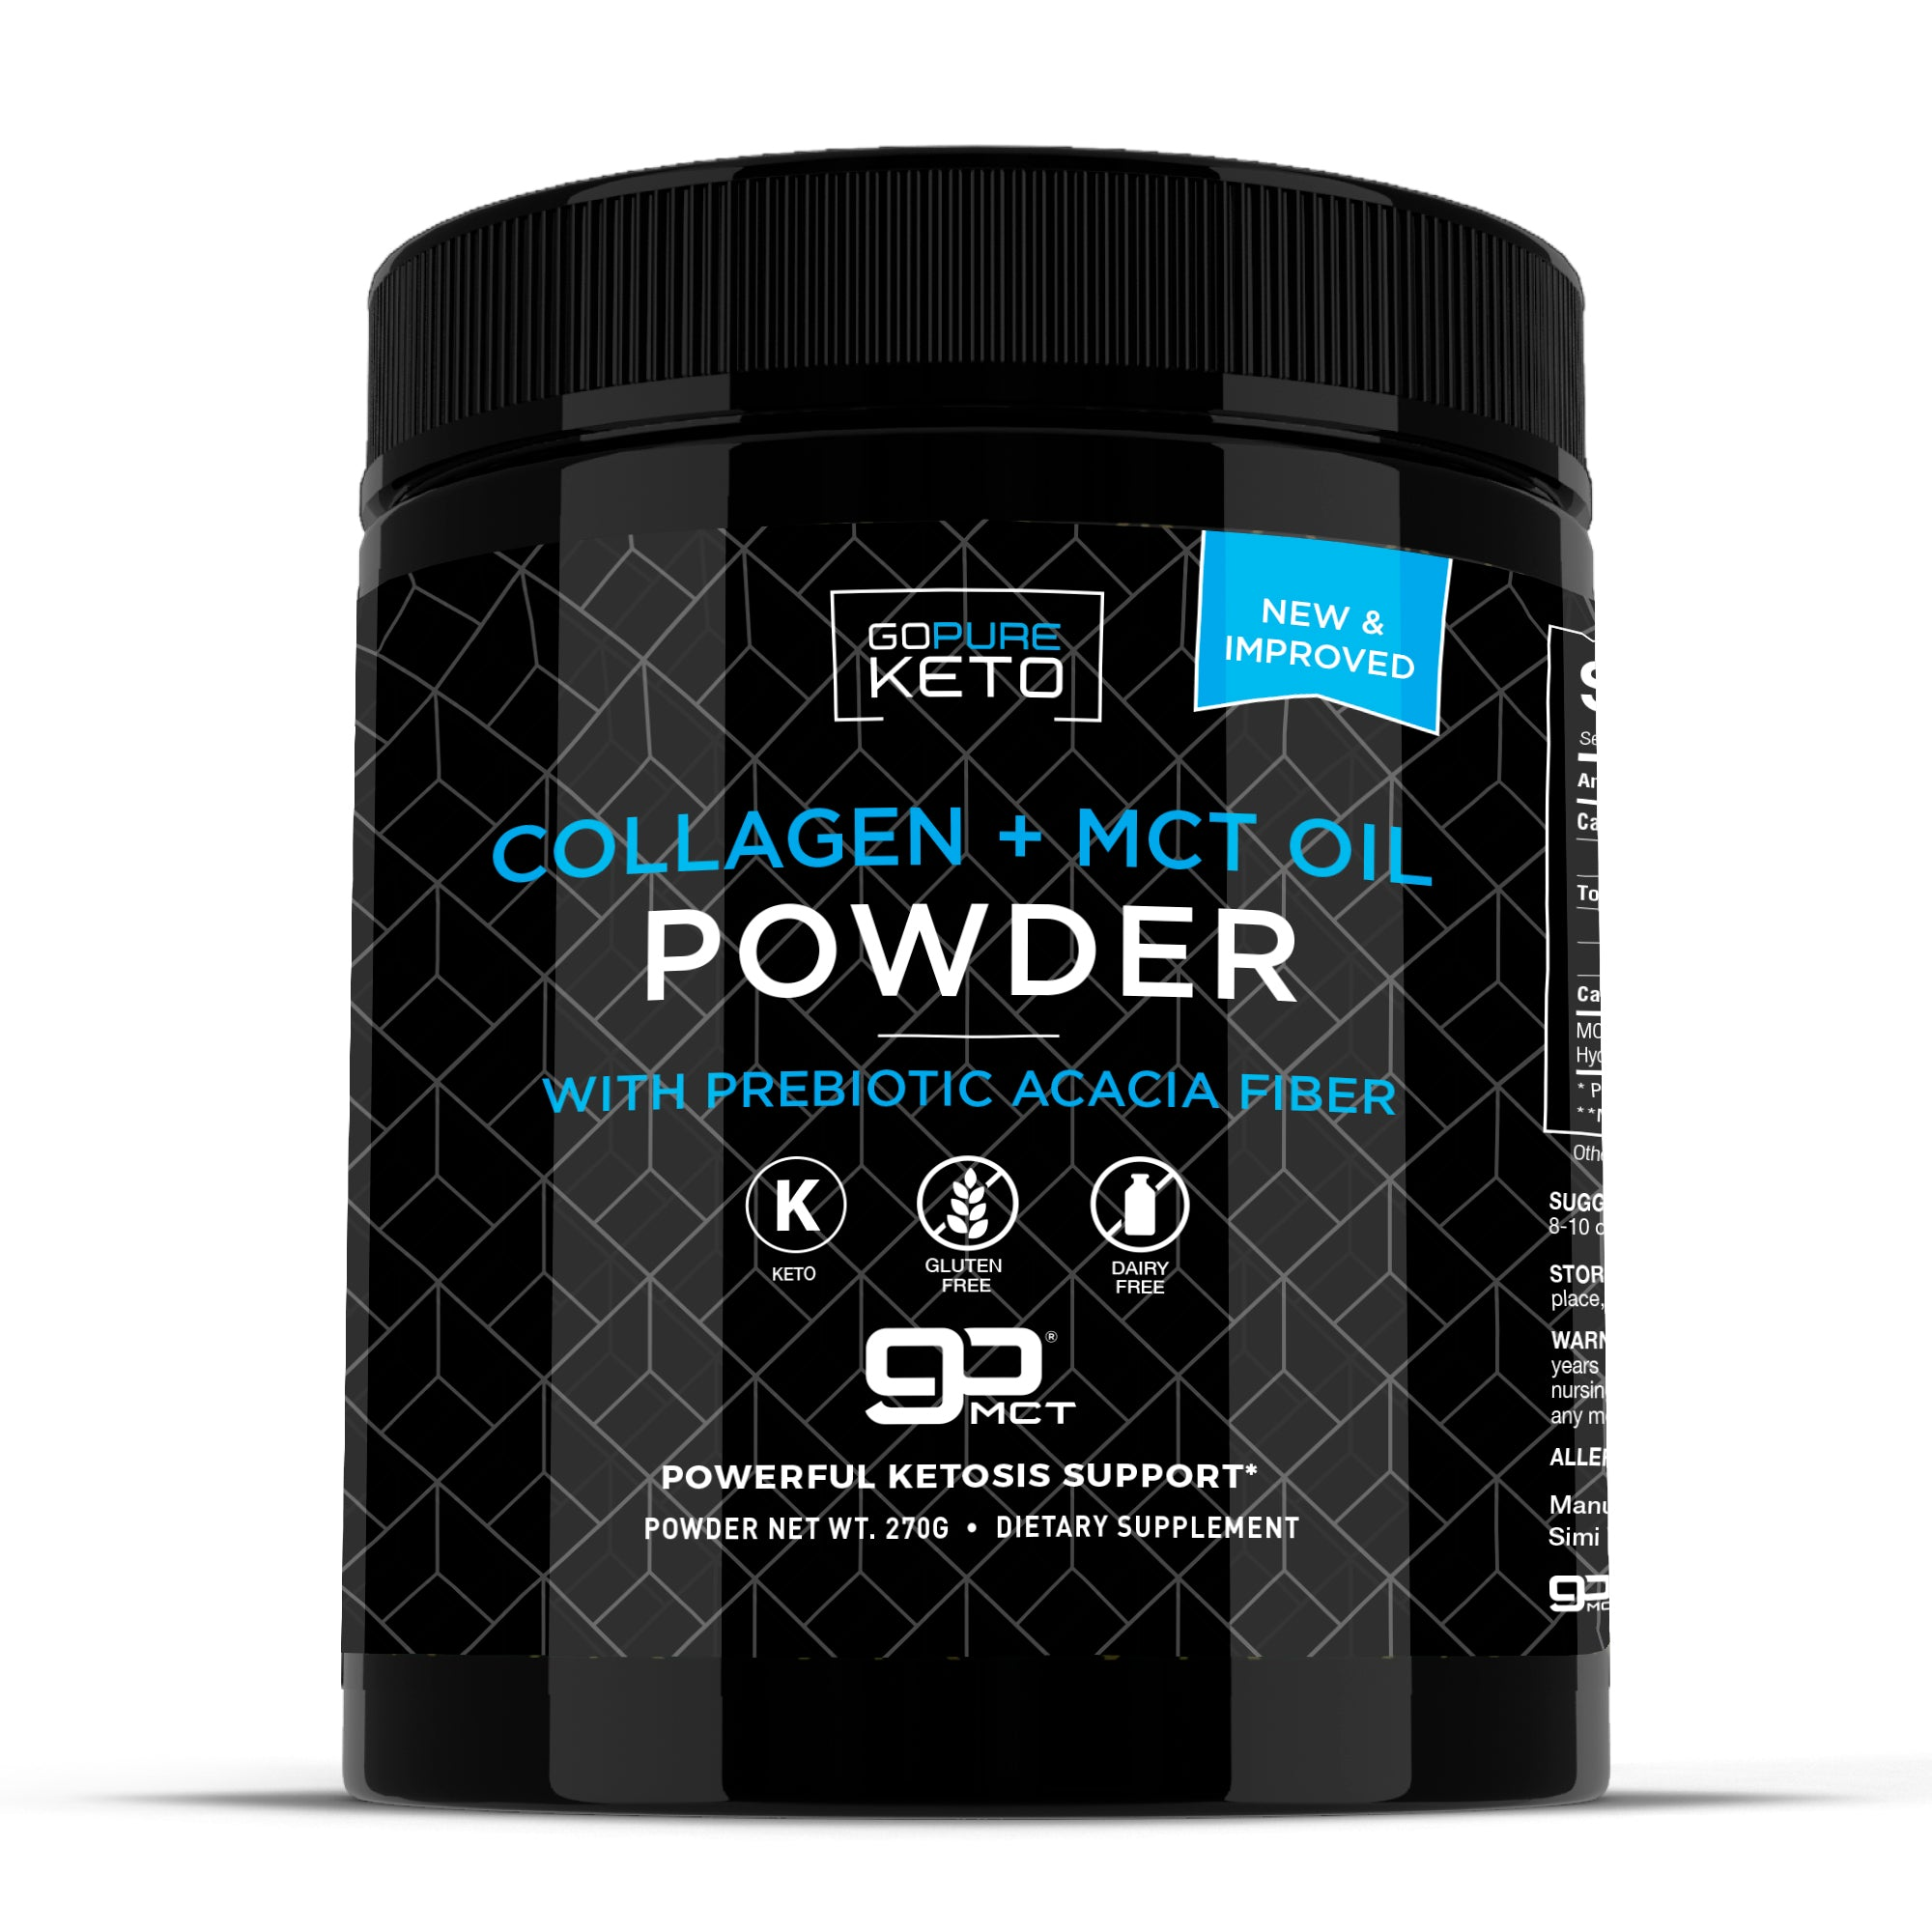 Keto Collagen + MCT Oil Powder - 30 Servings Unflavored